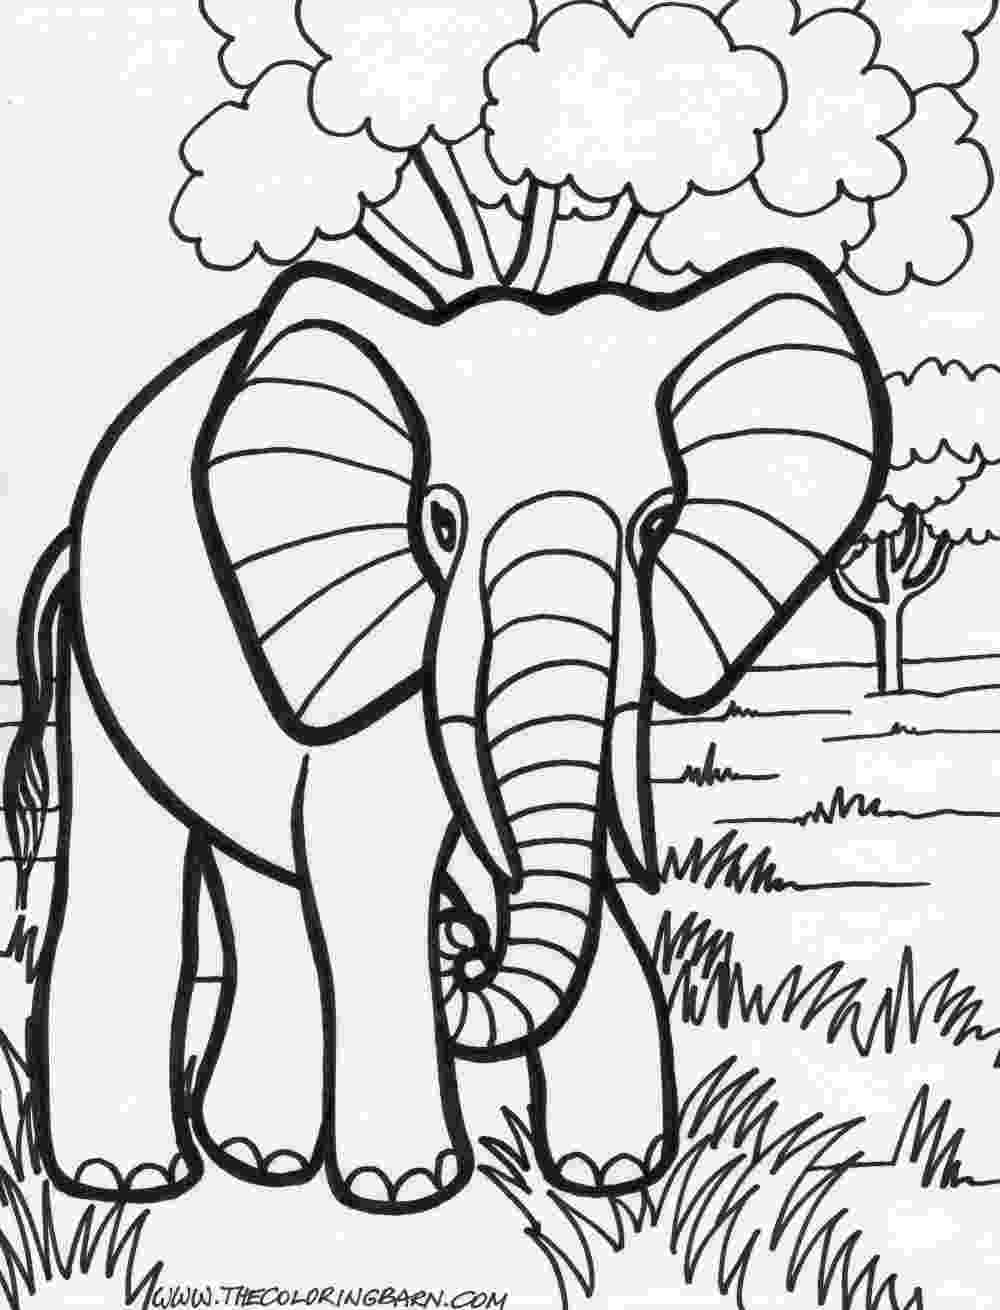 free coloring pages for children transmissionpress 14 elephant coloring pages for kids free coloring children for pages